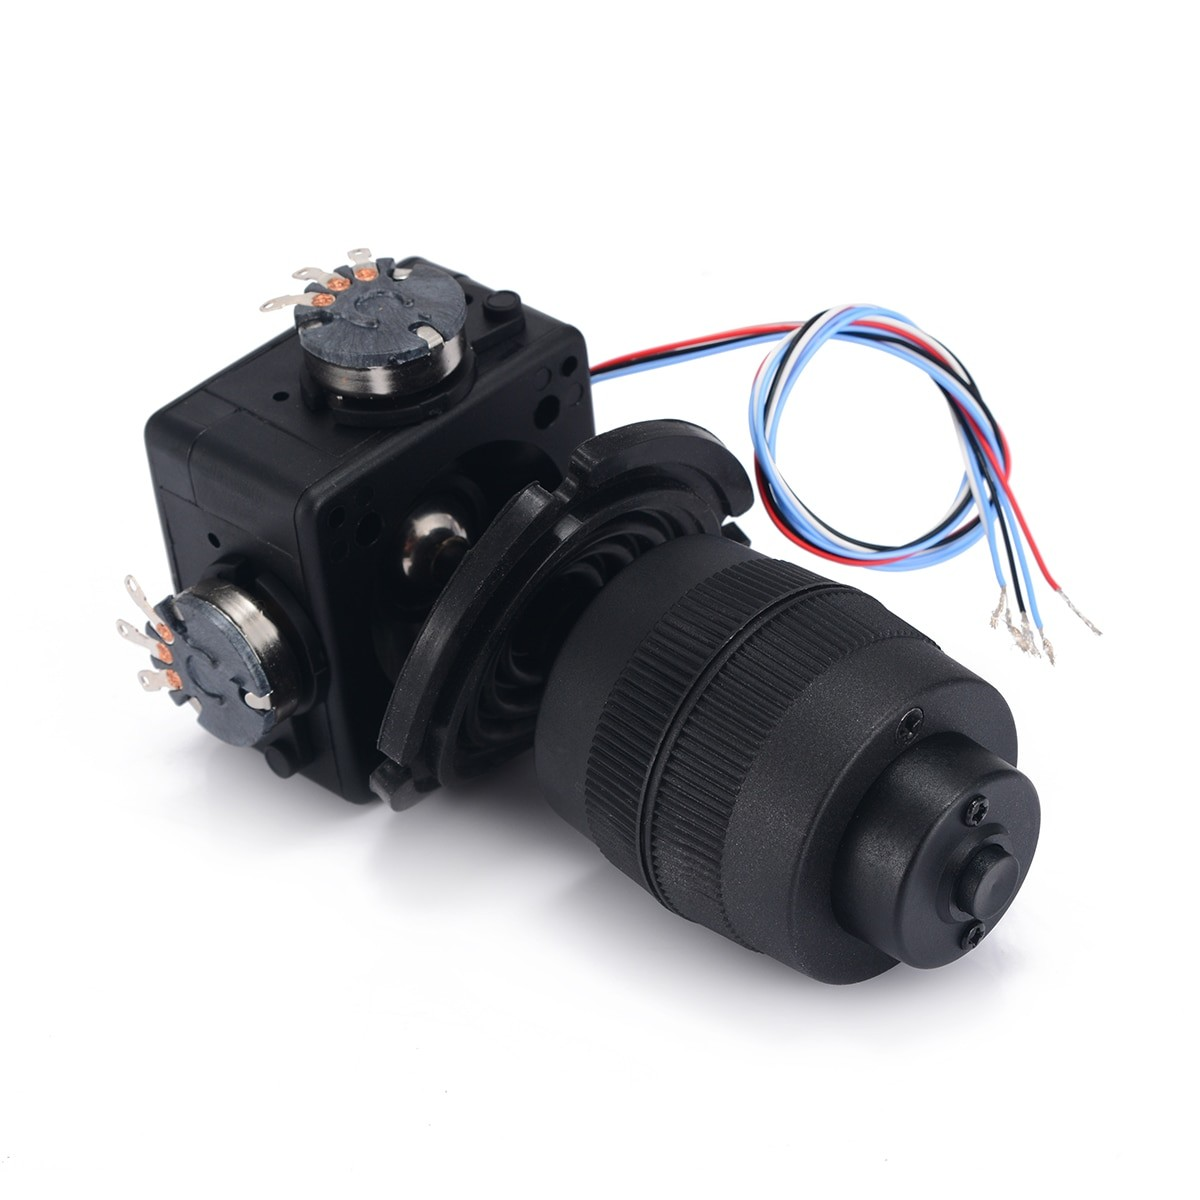 4-Axis Joystick Potentiometer Button Controller for industrial